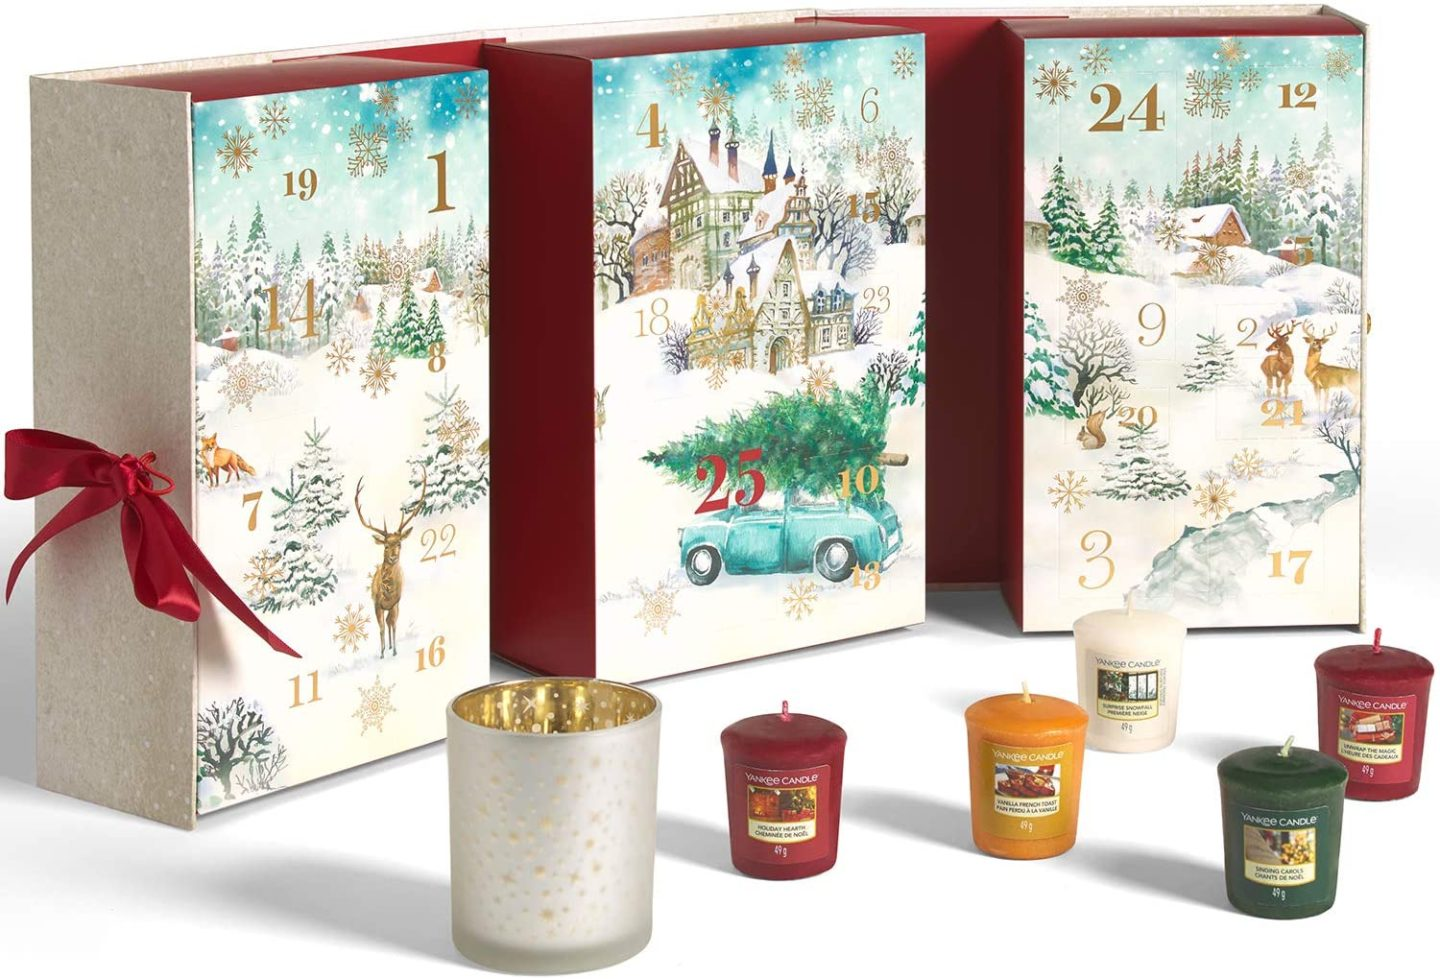 Calendrier avent bougie YANKEE CANDLE 2020